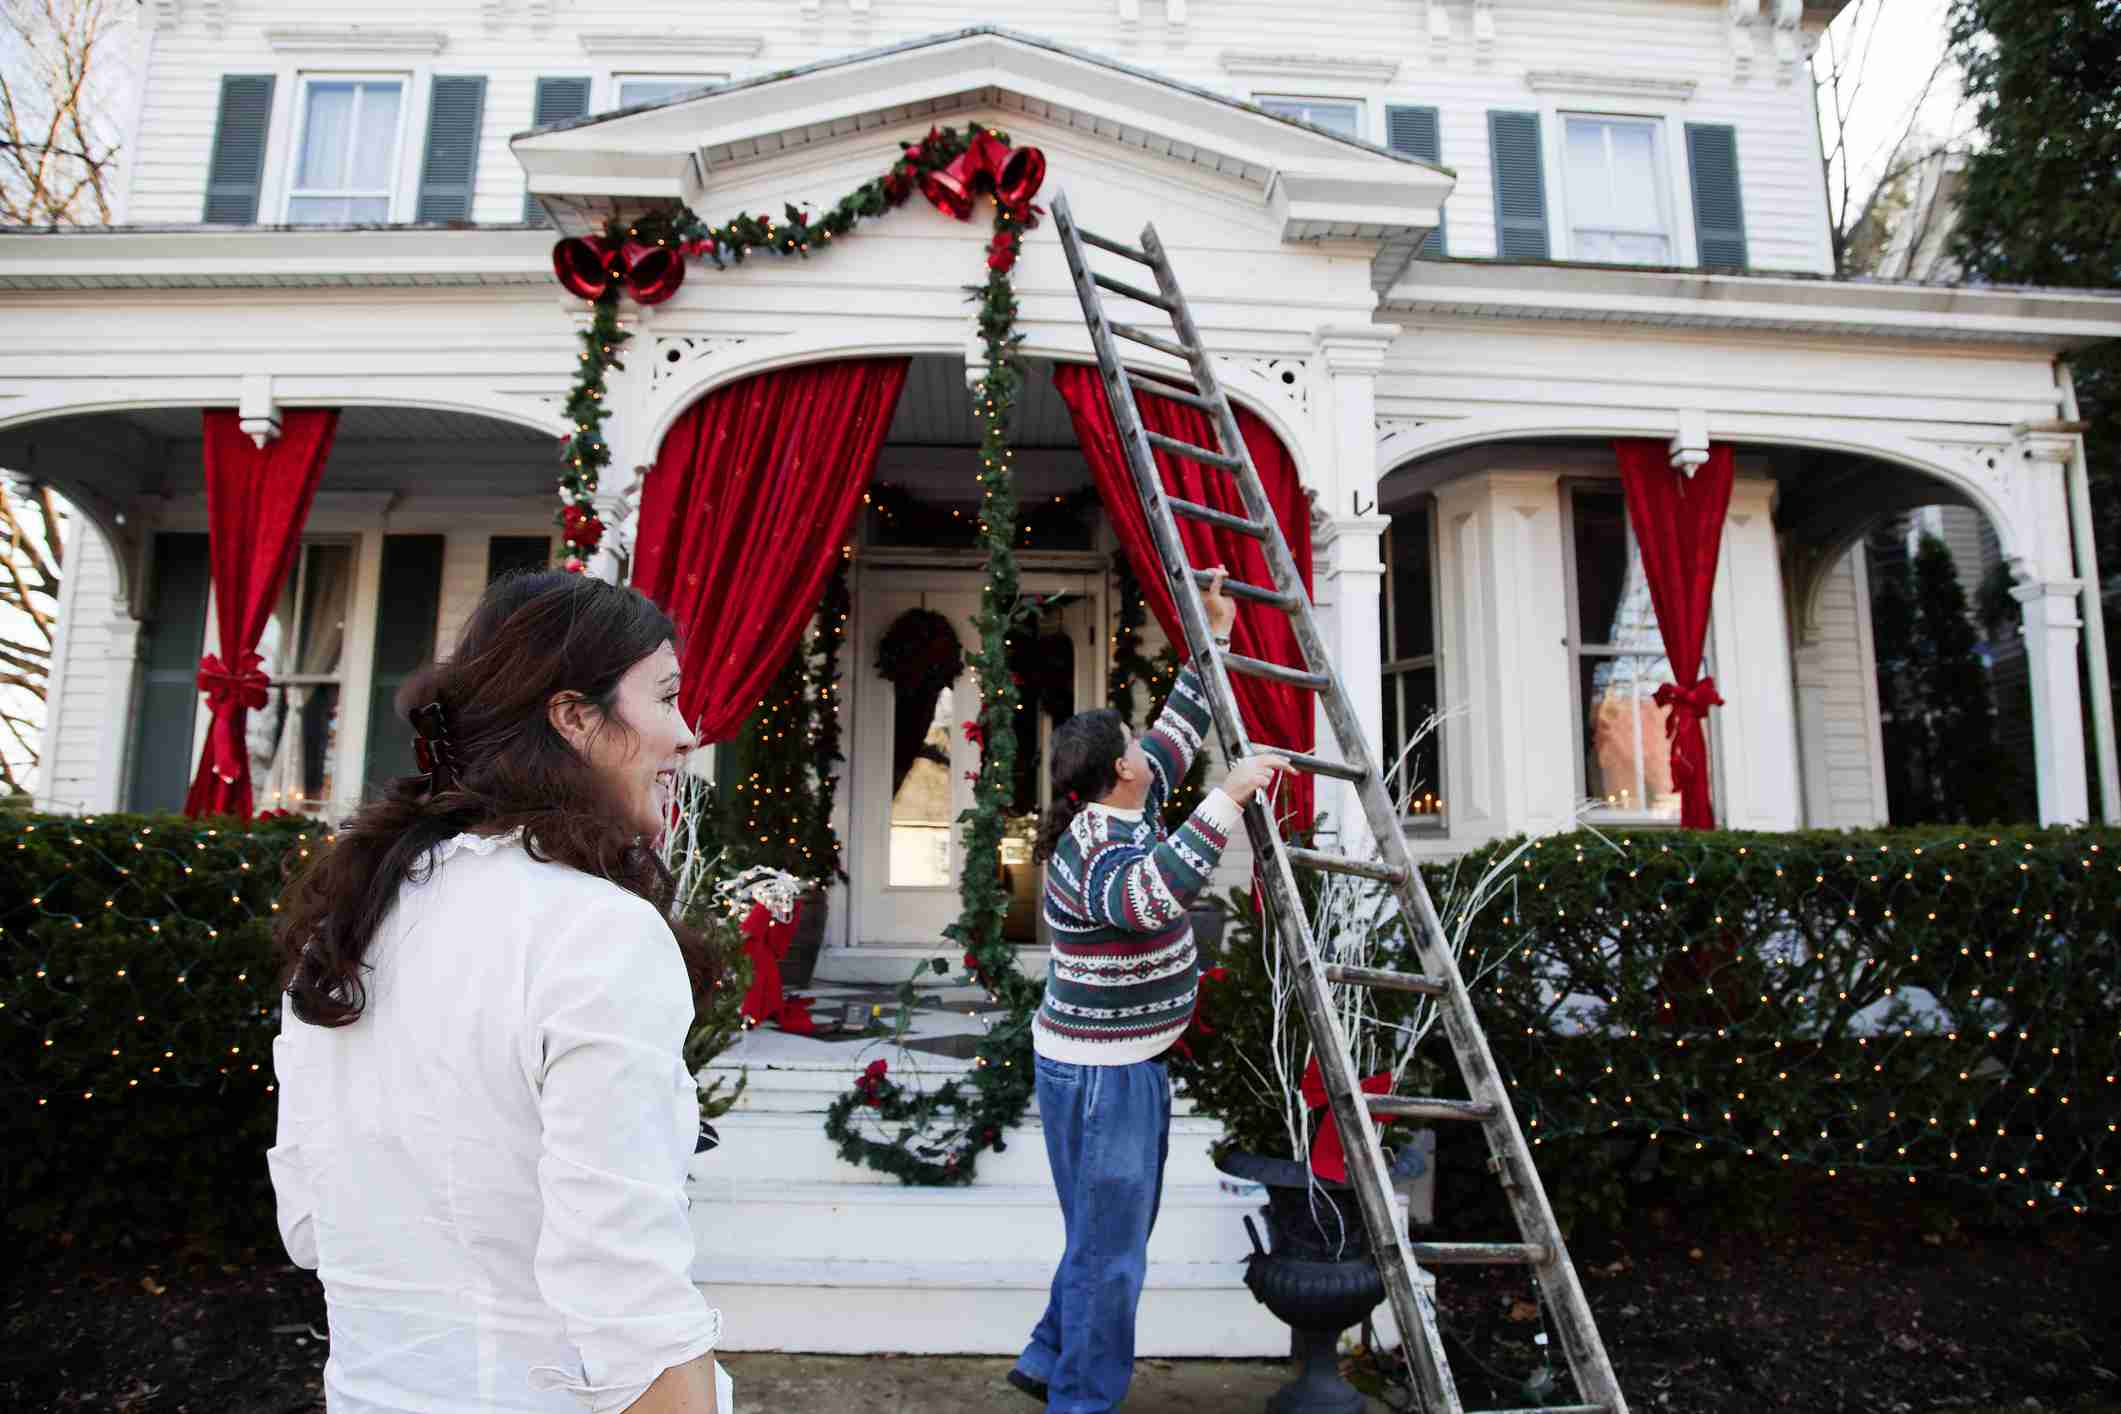 Couple hanging garlands on a house with a ladder for Christmas.